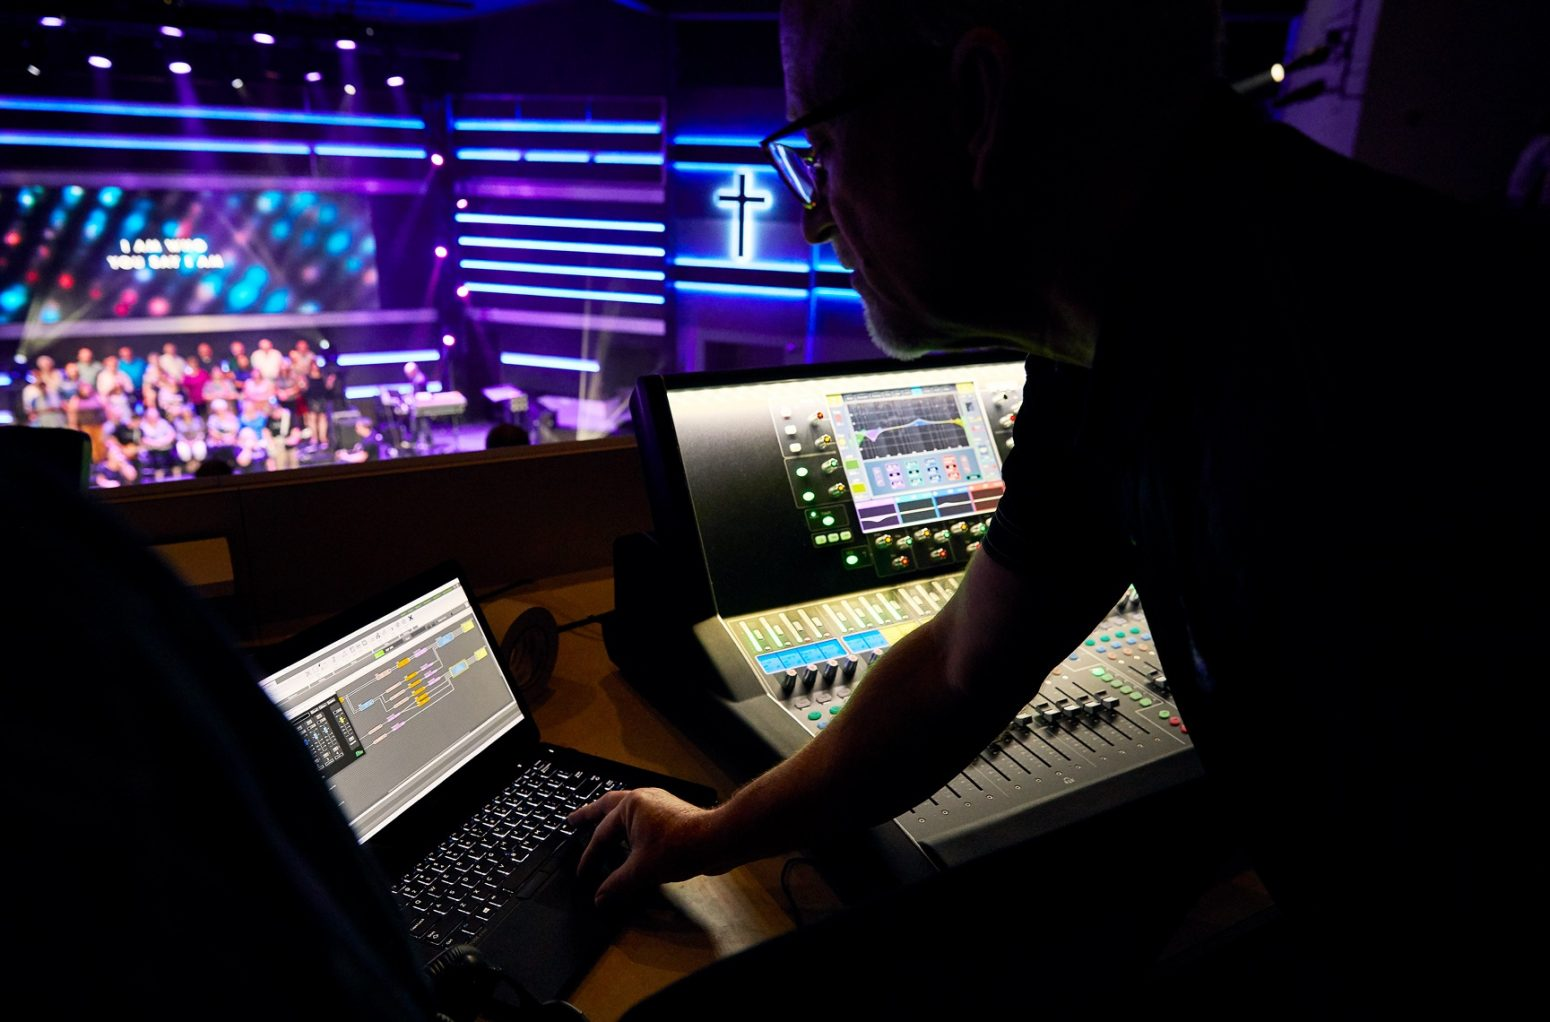 Audio design expert uses sound design system management software during church.